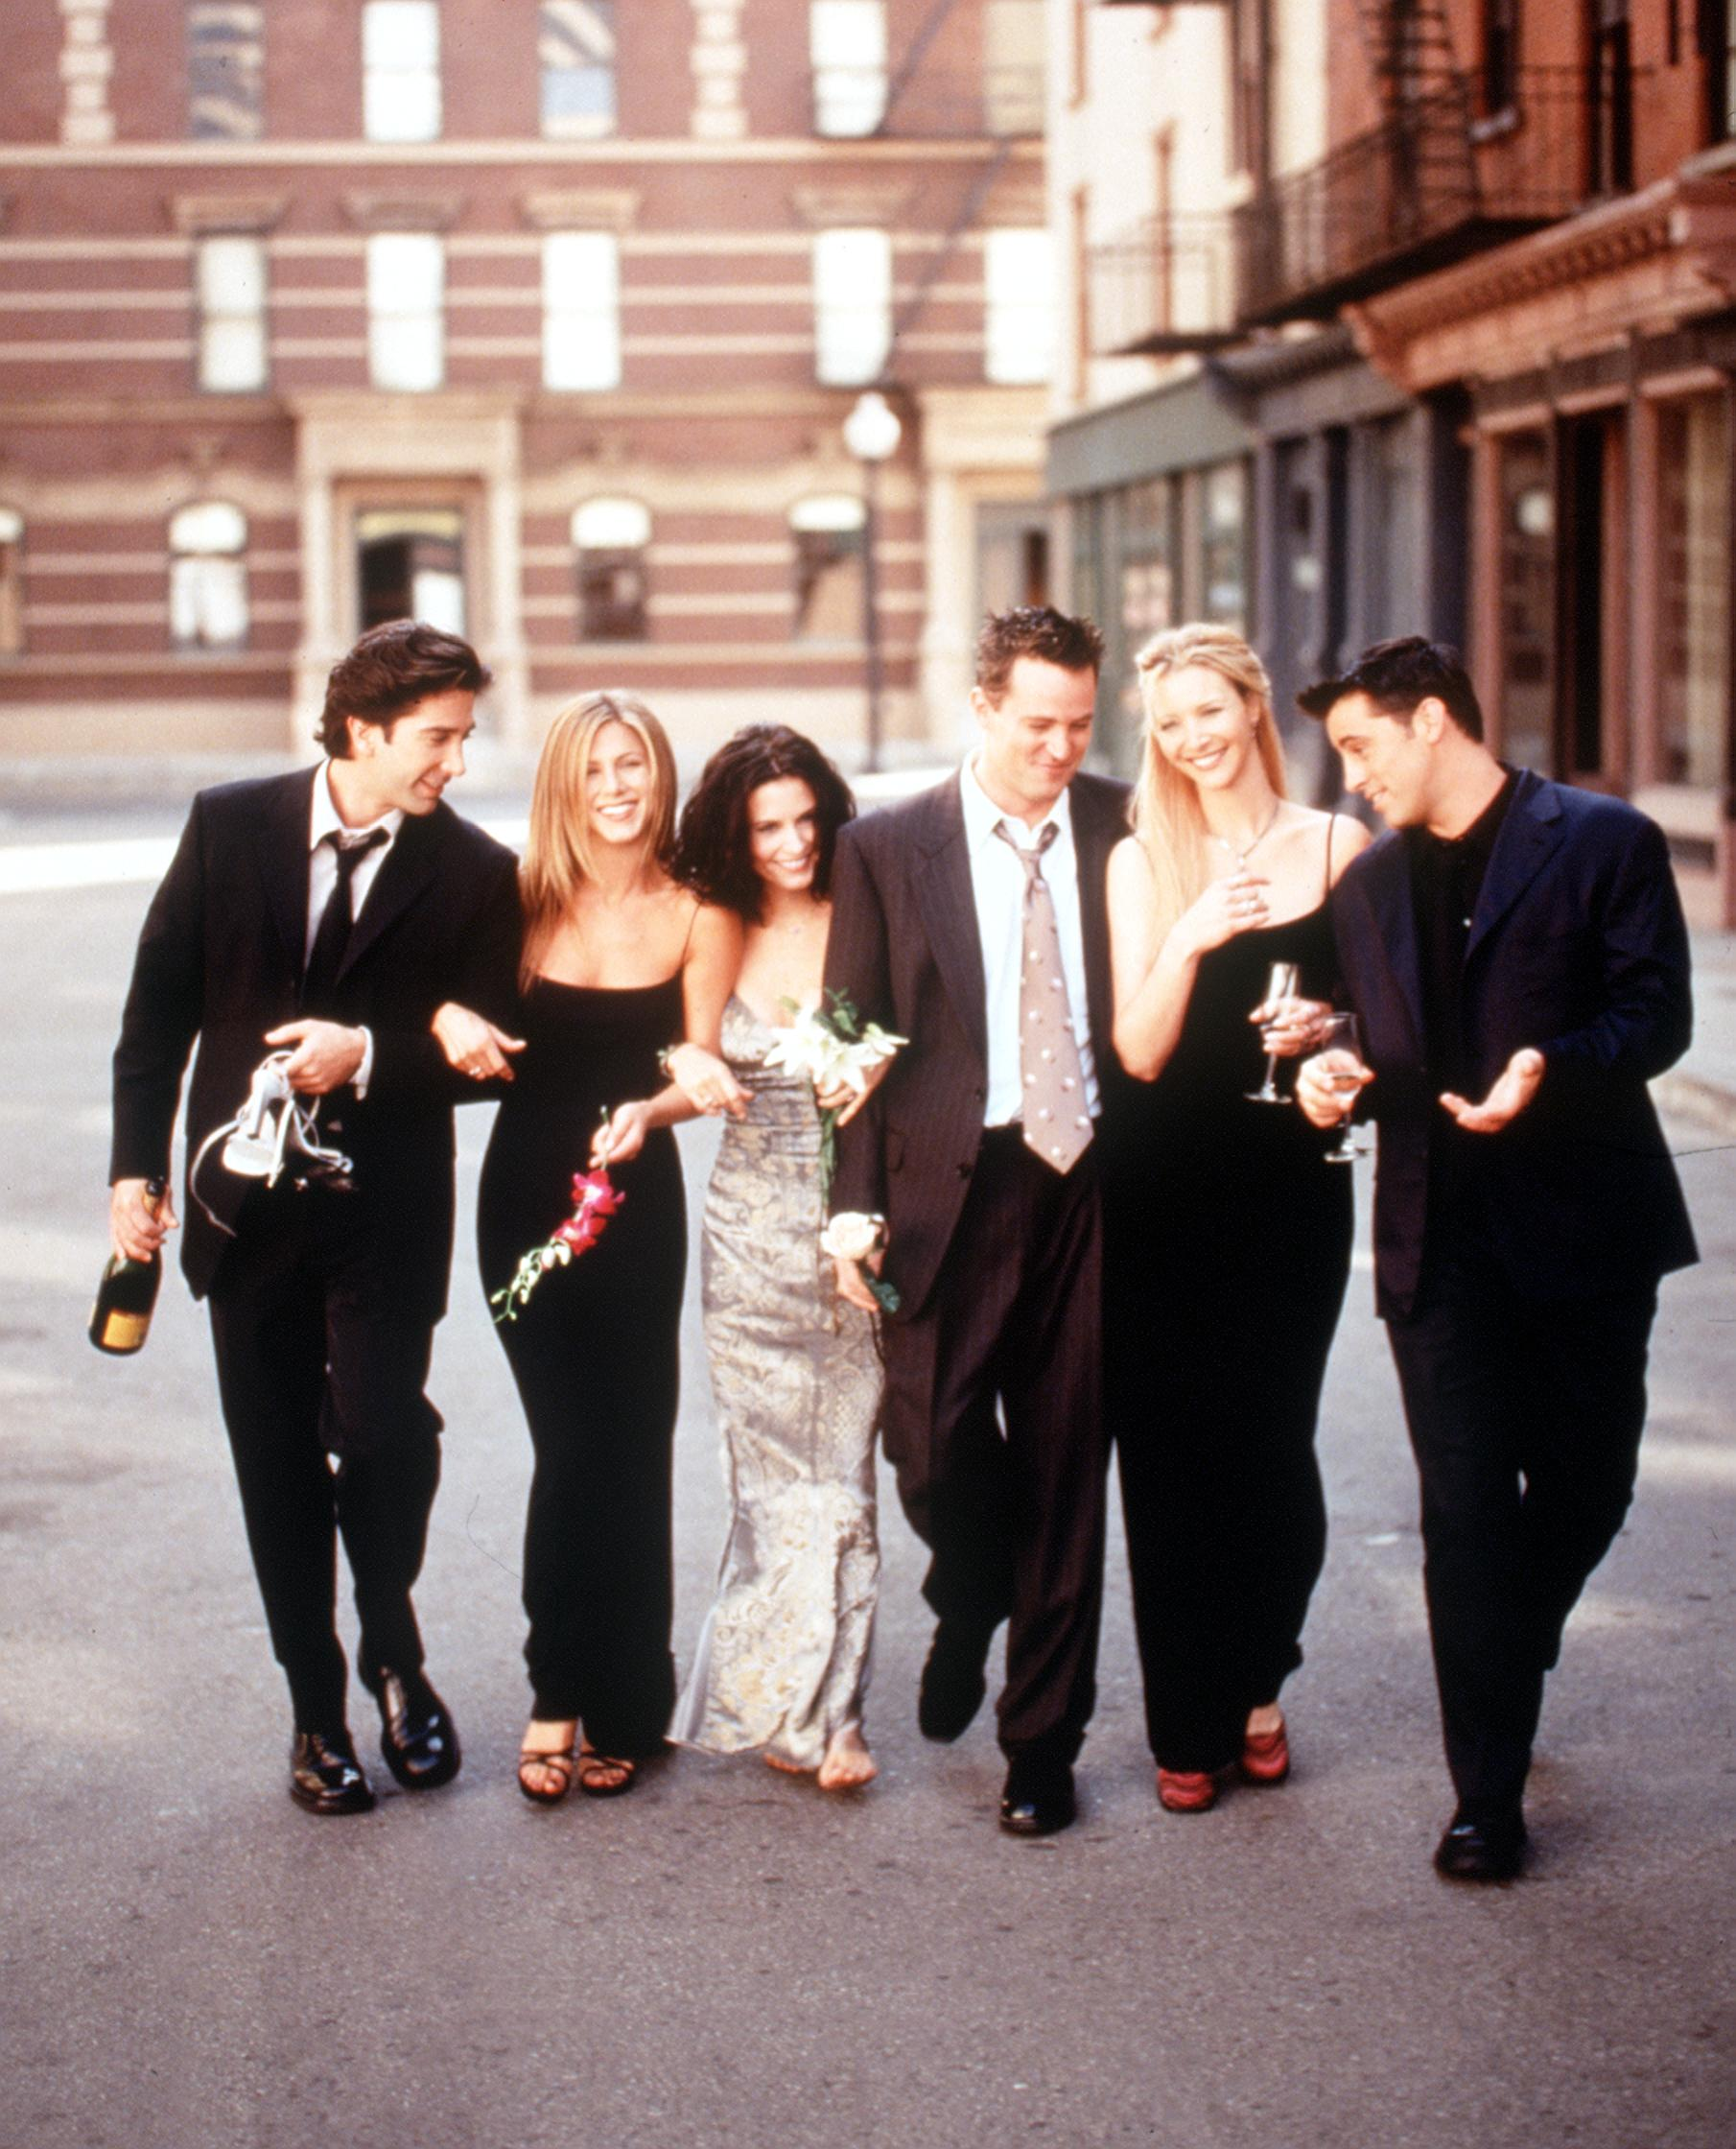 """The cast of """"Friends"""" take a photo together on October 20, 1999 